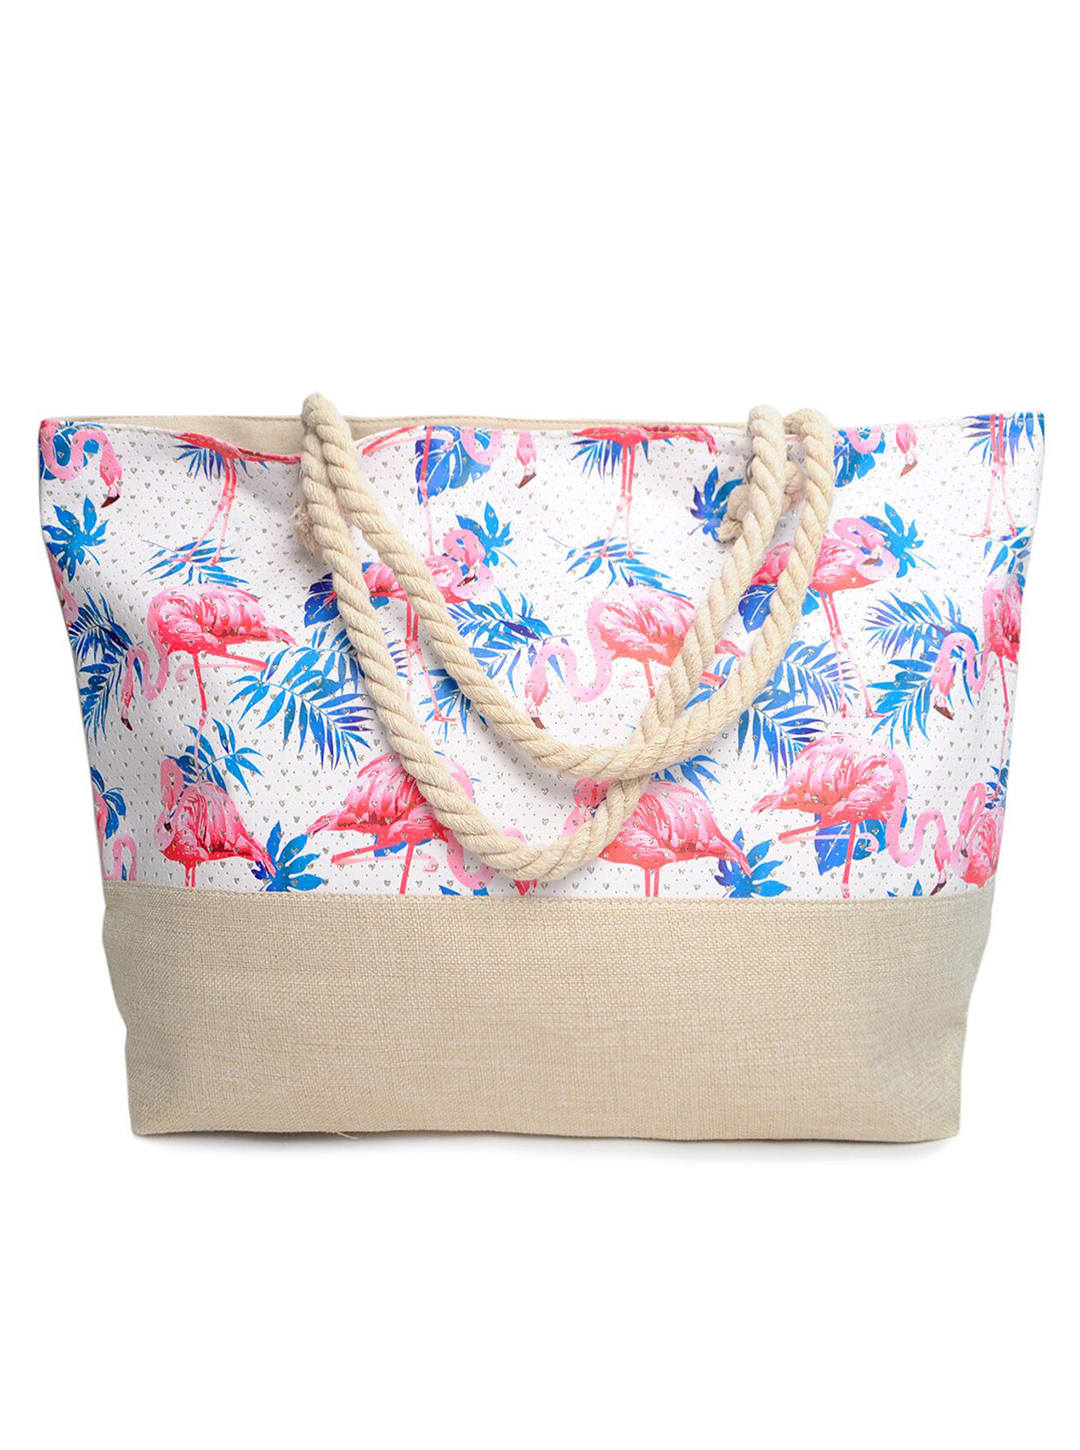 Flamingo x Palm Leaves Tote Beach Bag - Light Beige - Front